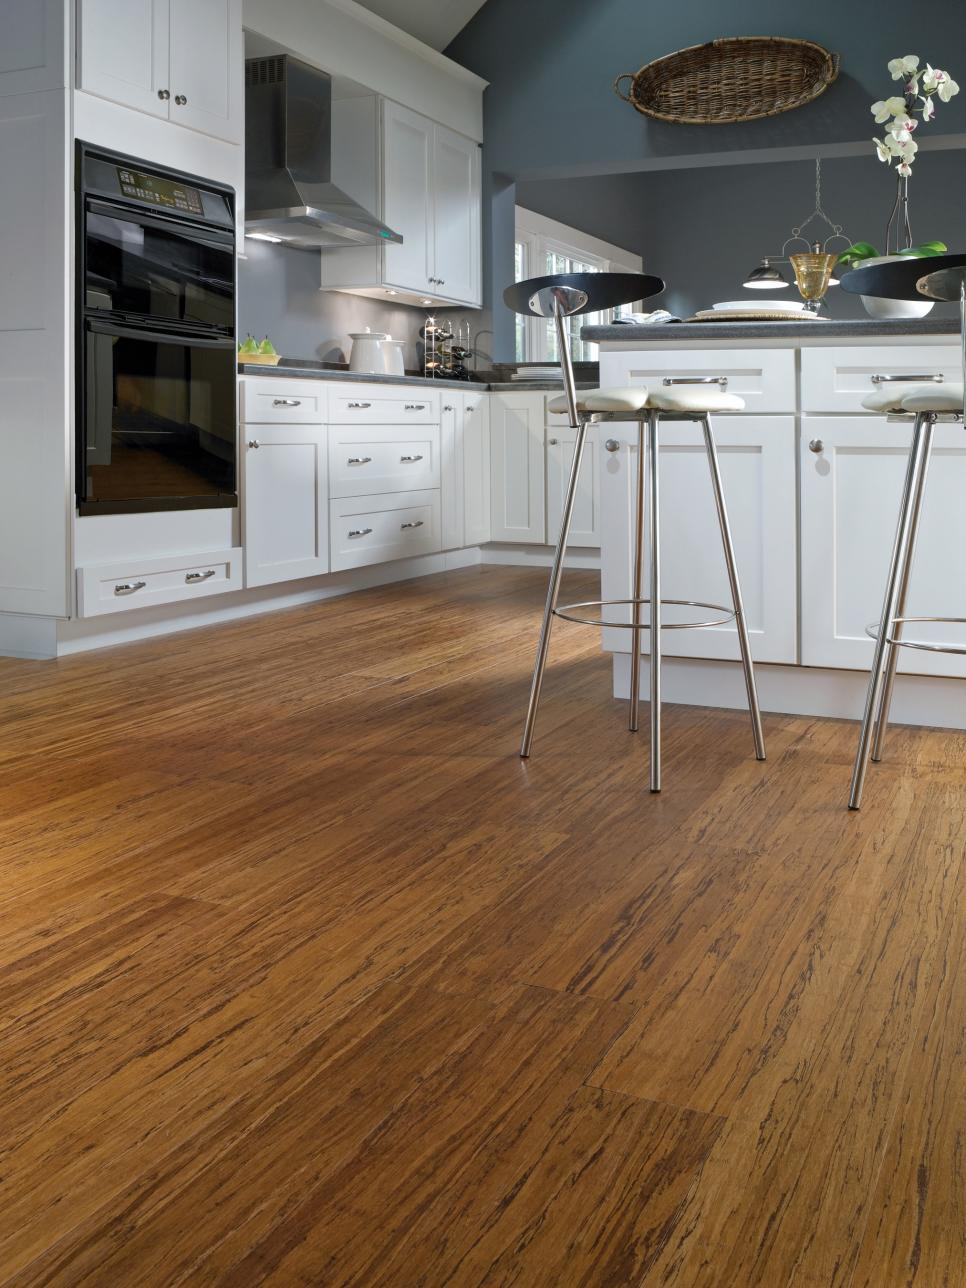 kitchen flooring ideas hgtv - Modern Kitchen Flooring Ideas